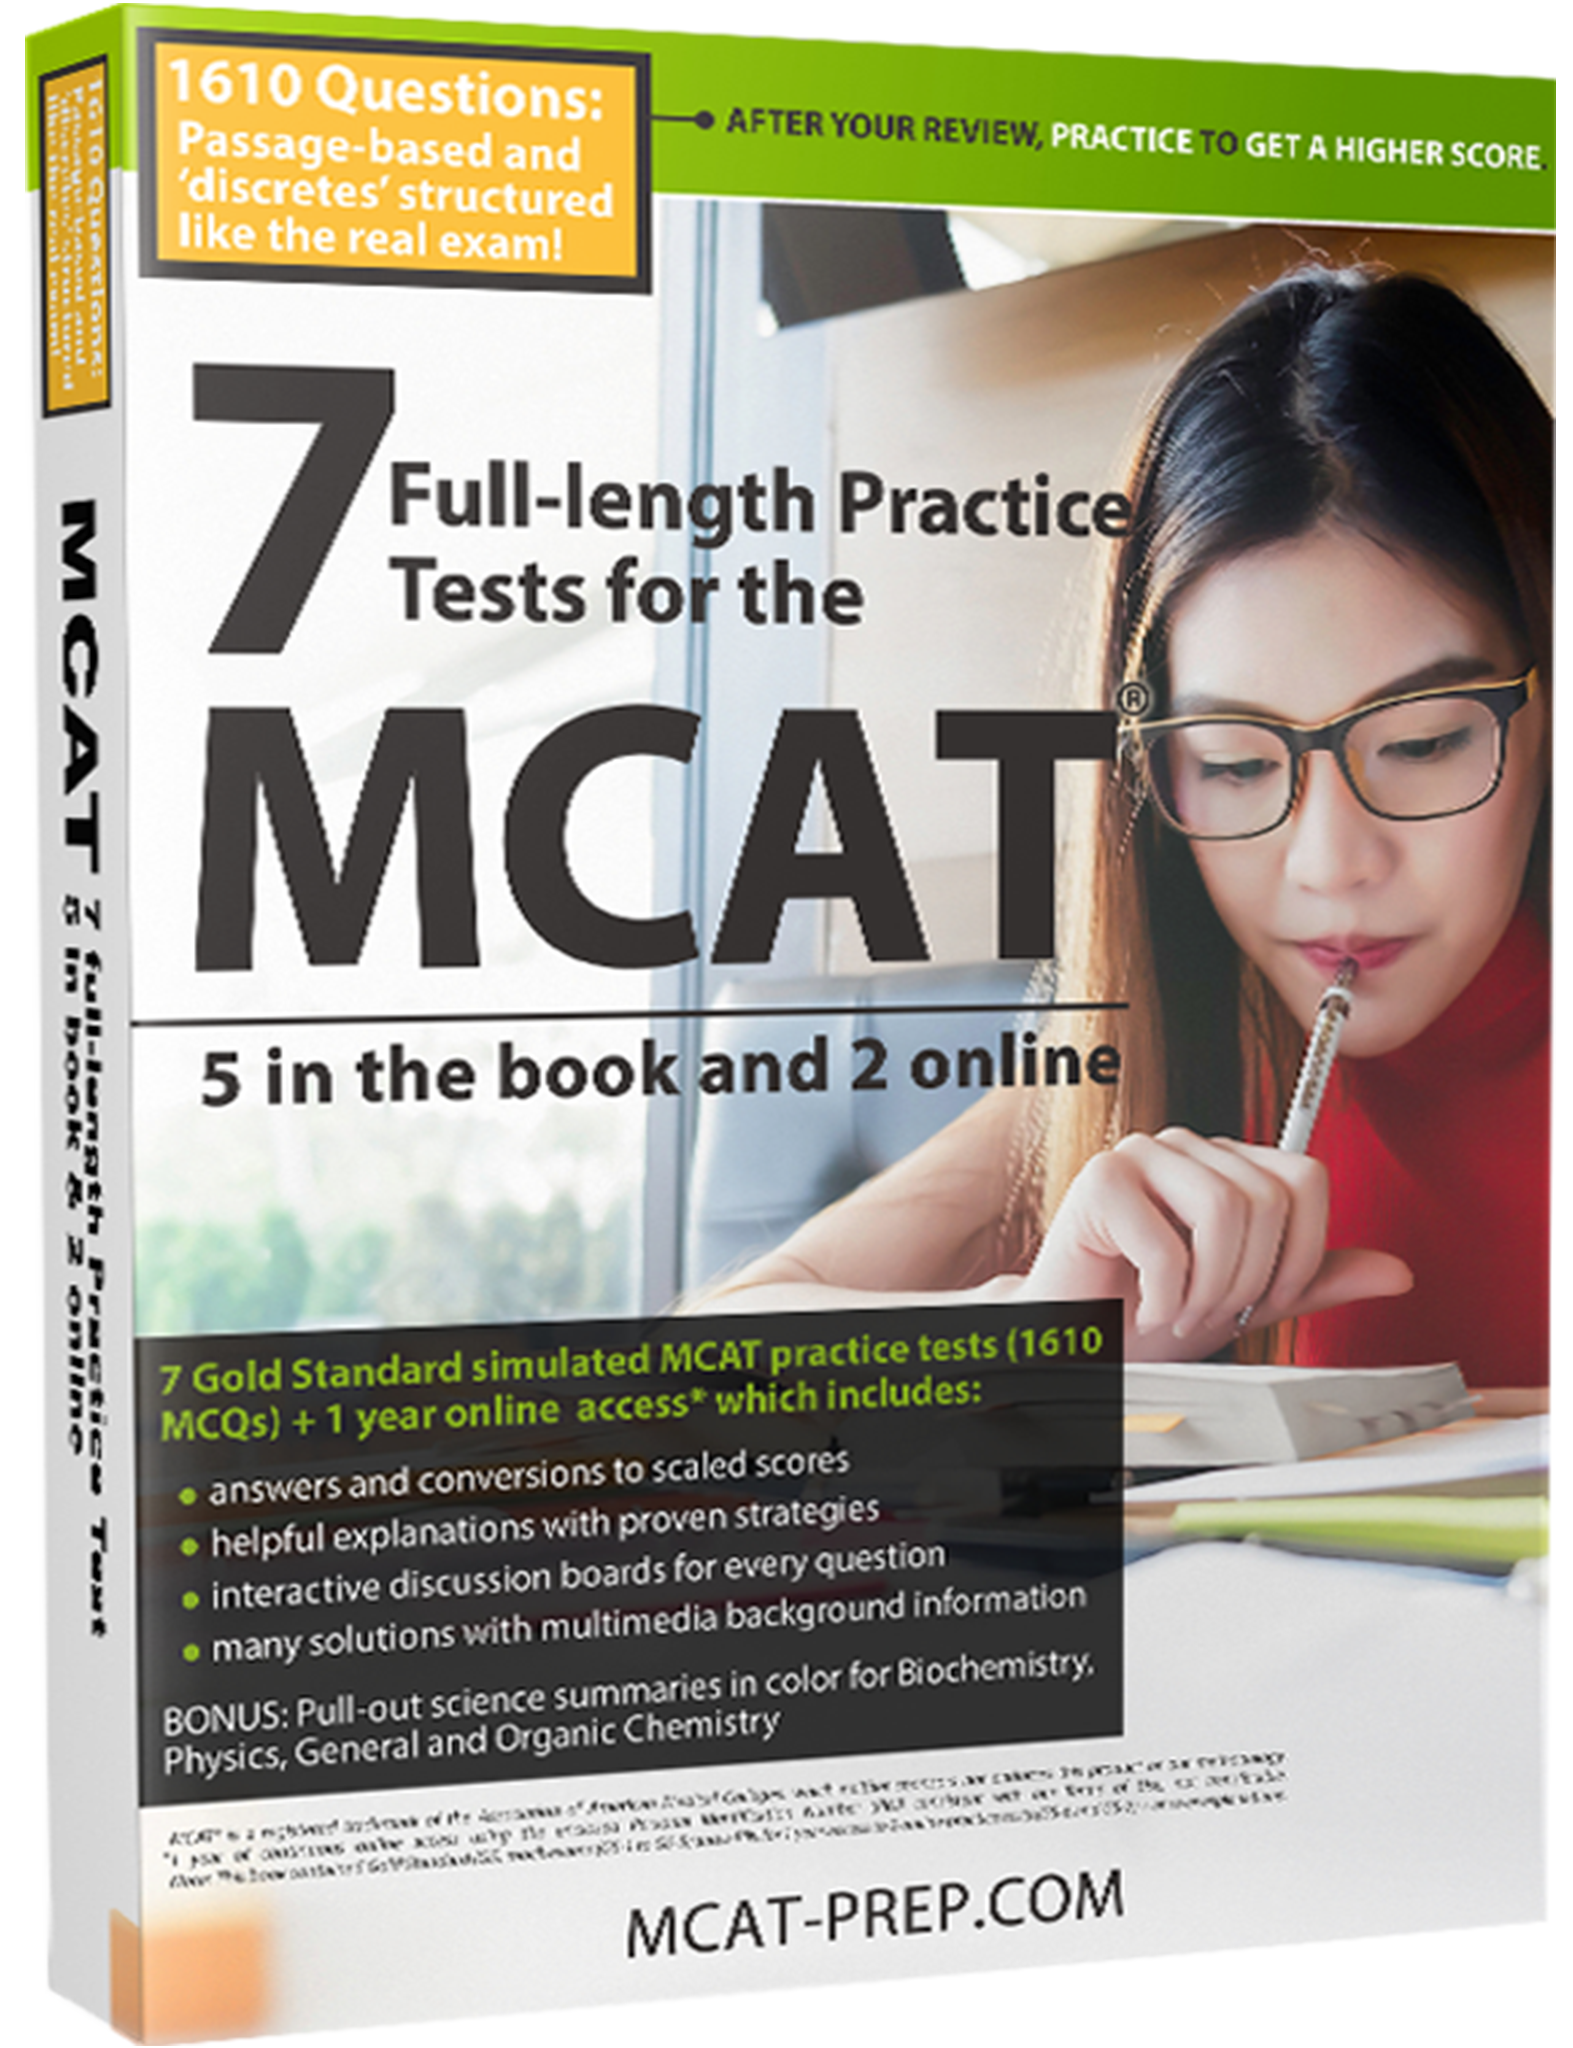 MCAT Sample Questions| Try out these free MCAT questions